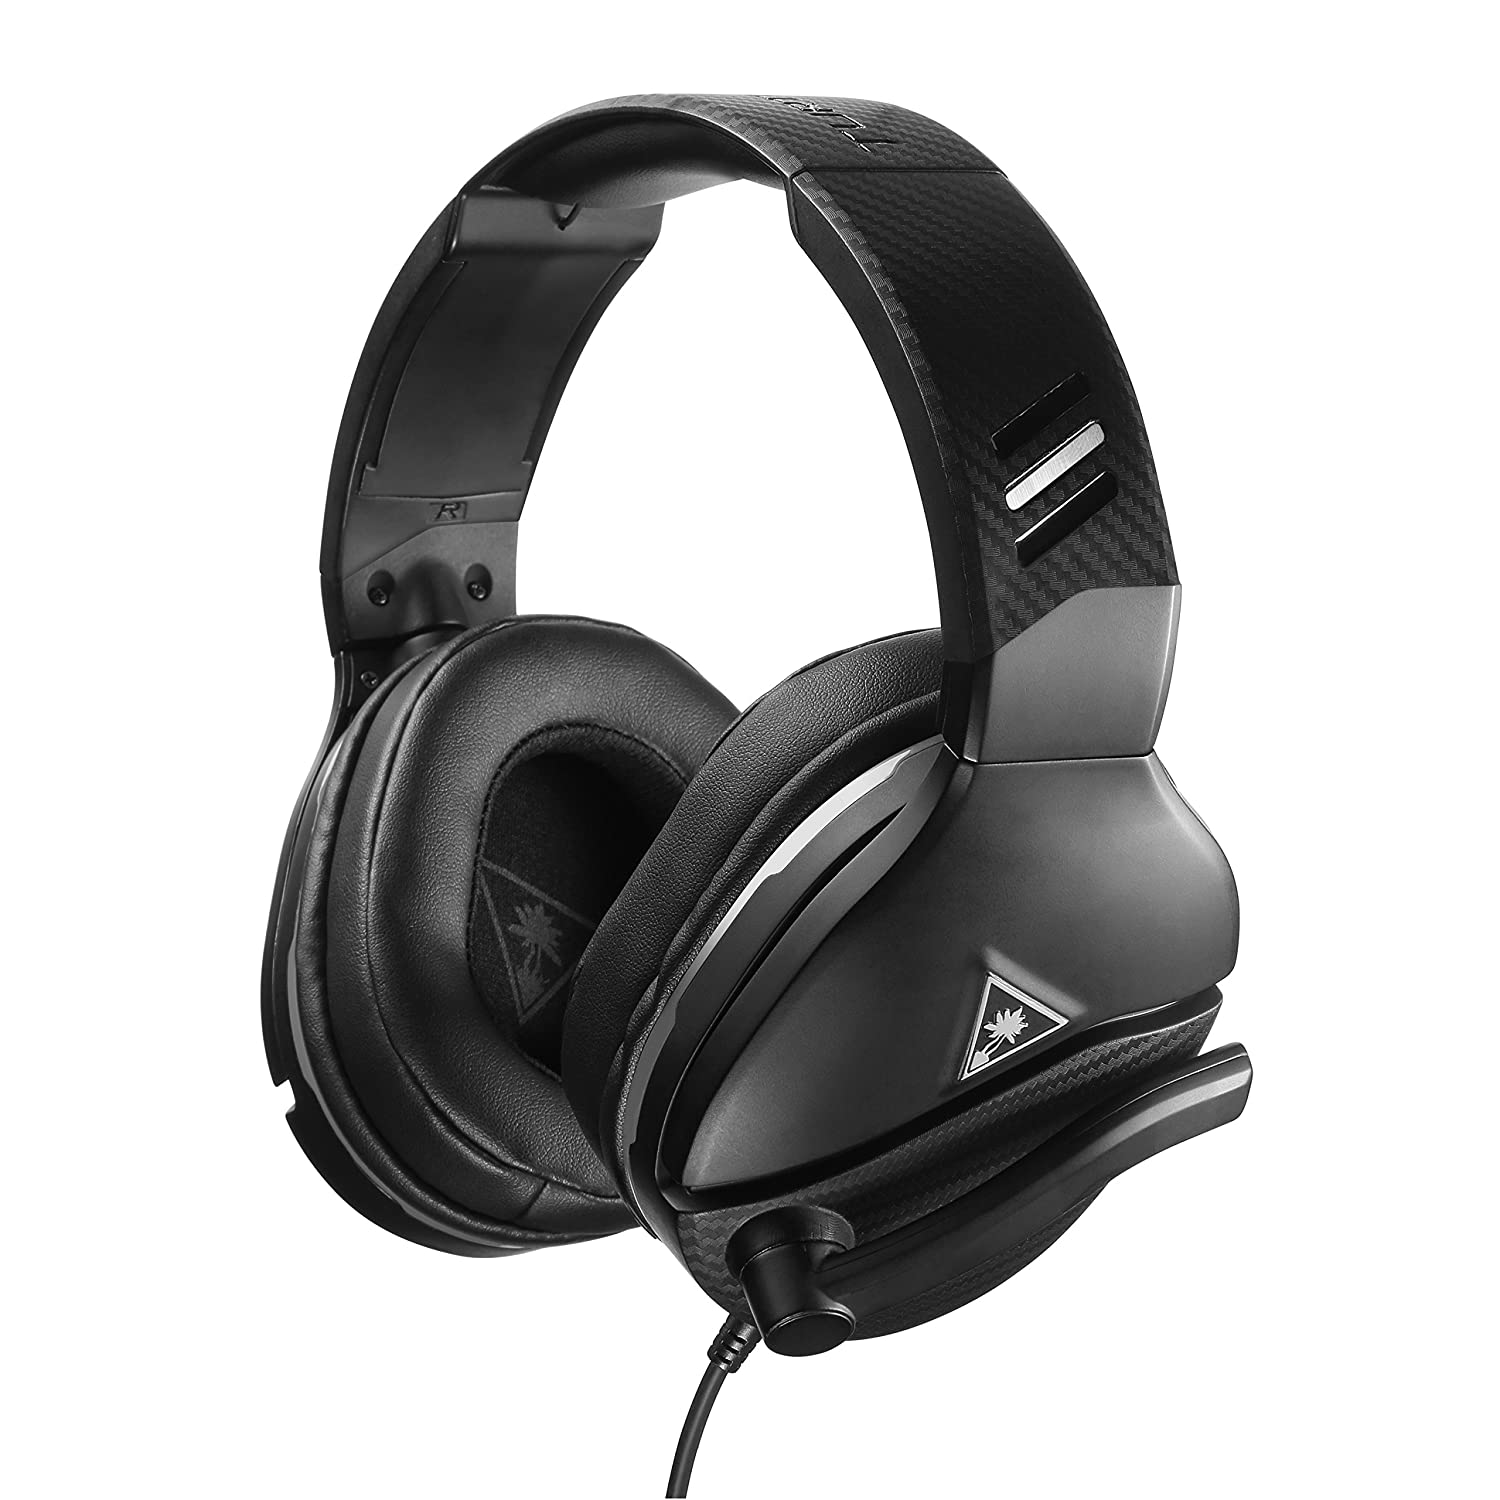 Turtle Beach Recon 200 Review and More